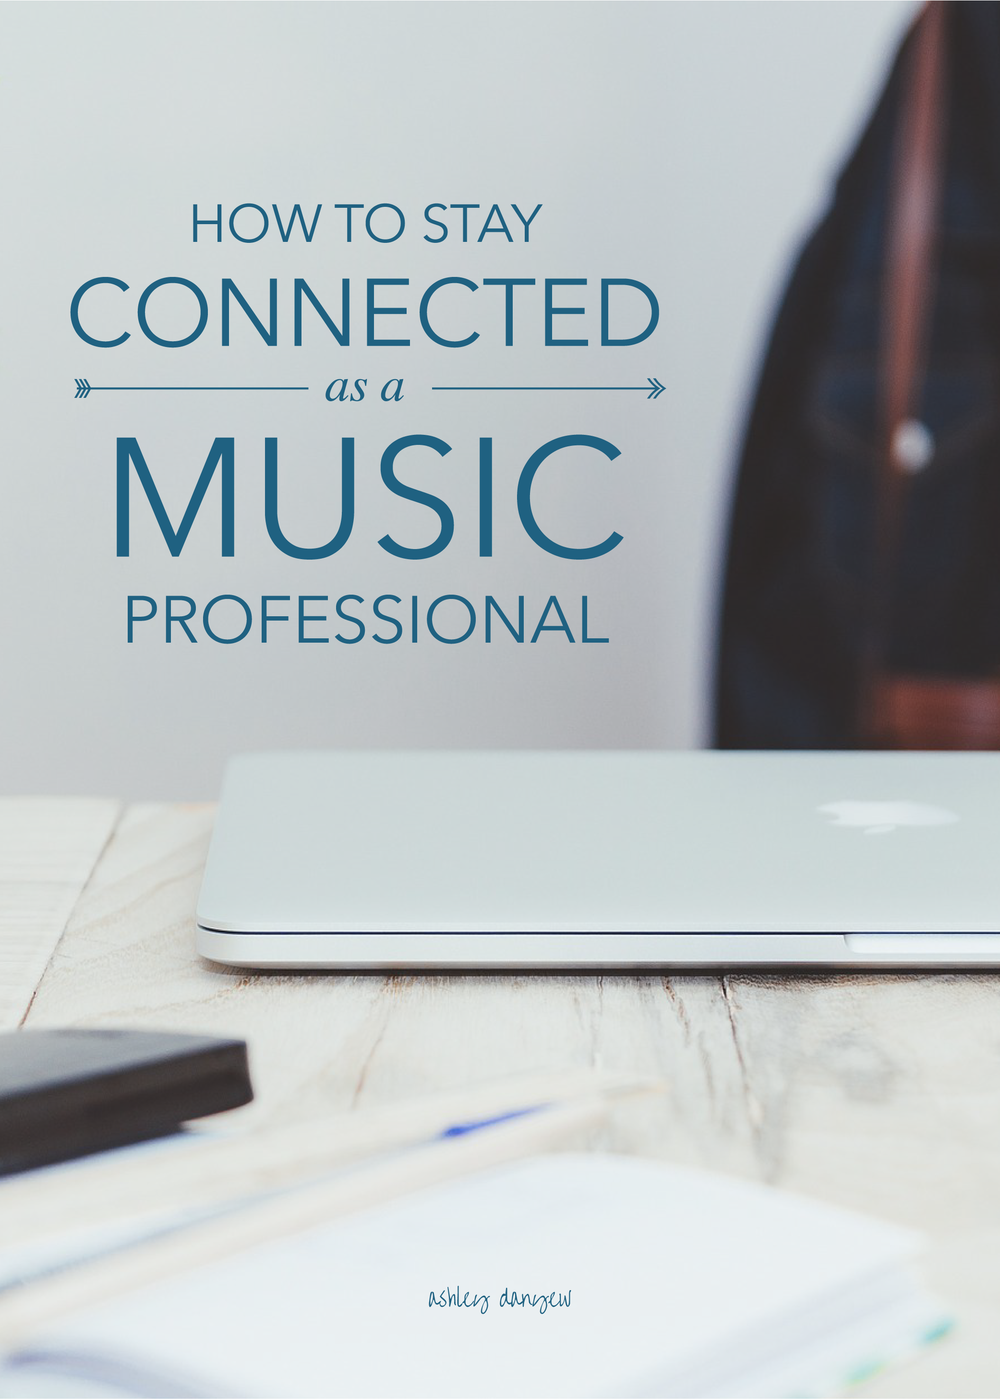 How to Stay Connected As a Music Professional-01.png